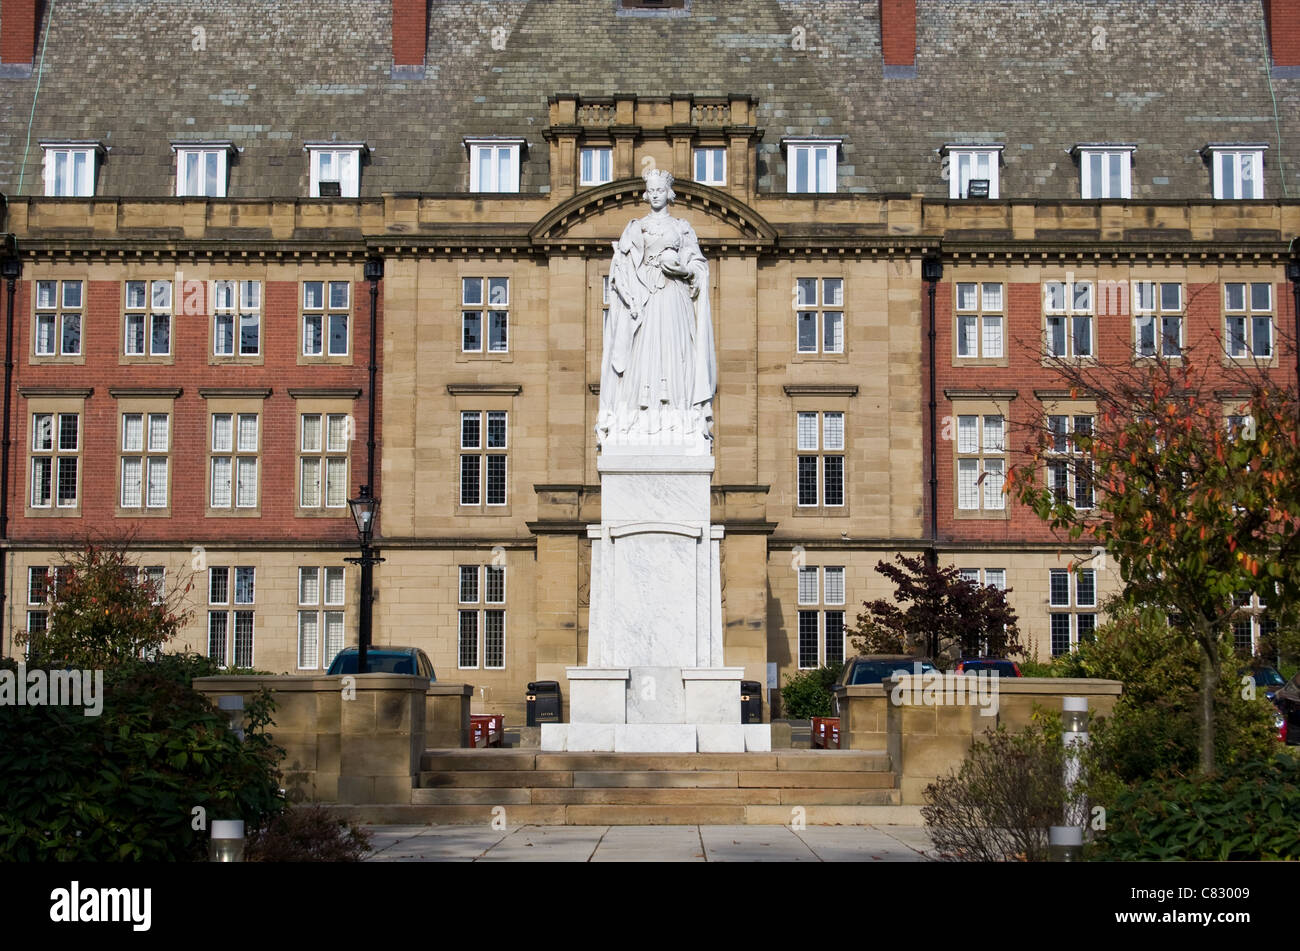 Royal Victoria Infirmary (RVI) + statue of Queen Victoria, Newcastle Upon Tyne Hospitals NHS Foundation Trust, England, - Stock Image